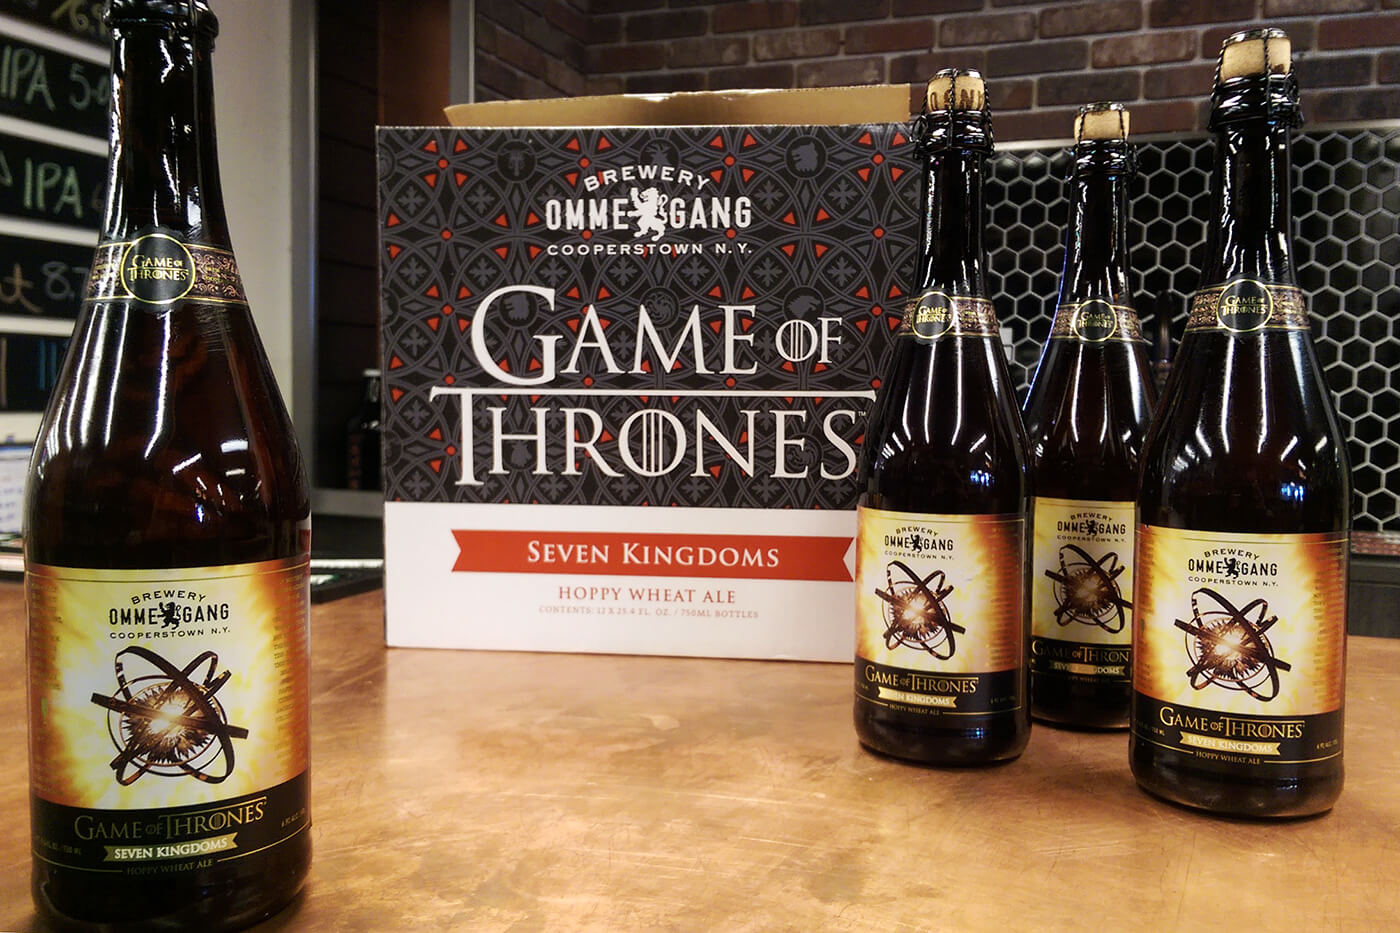 Brewery Ommegang Seven Kingdoms